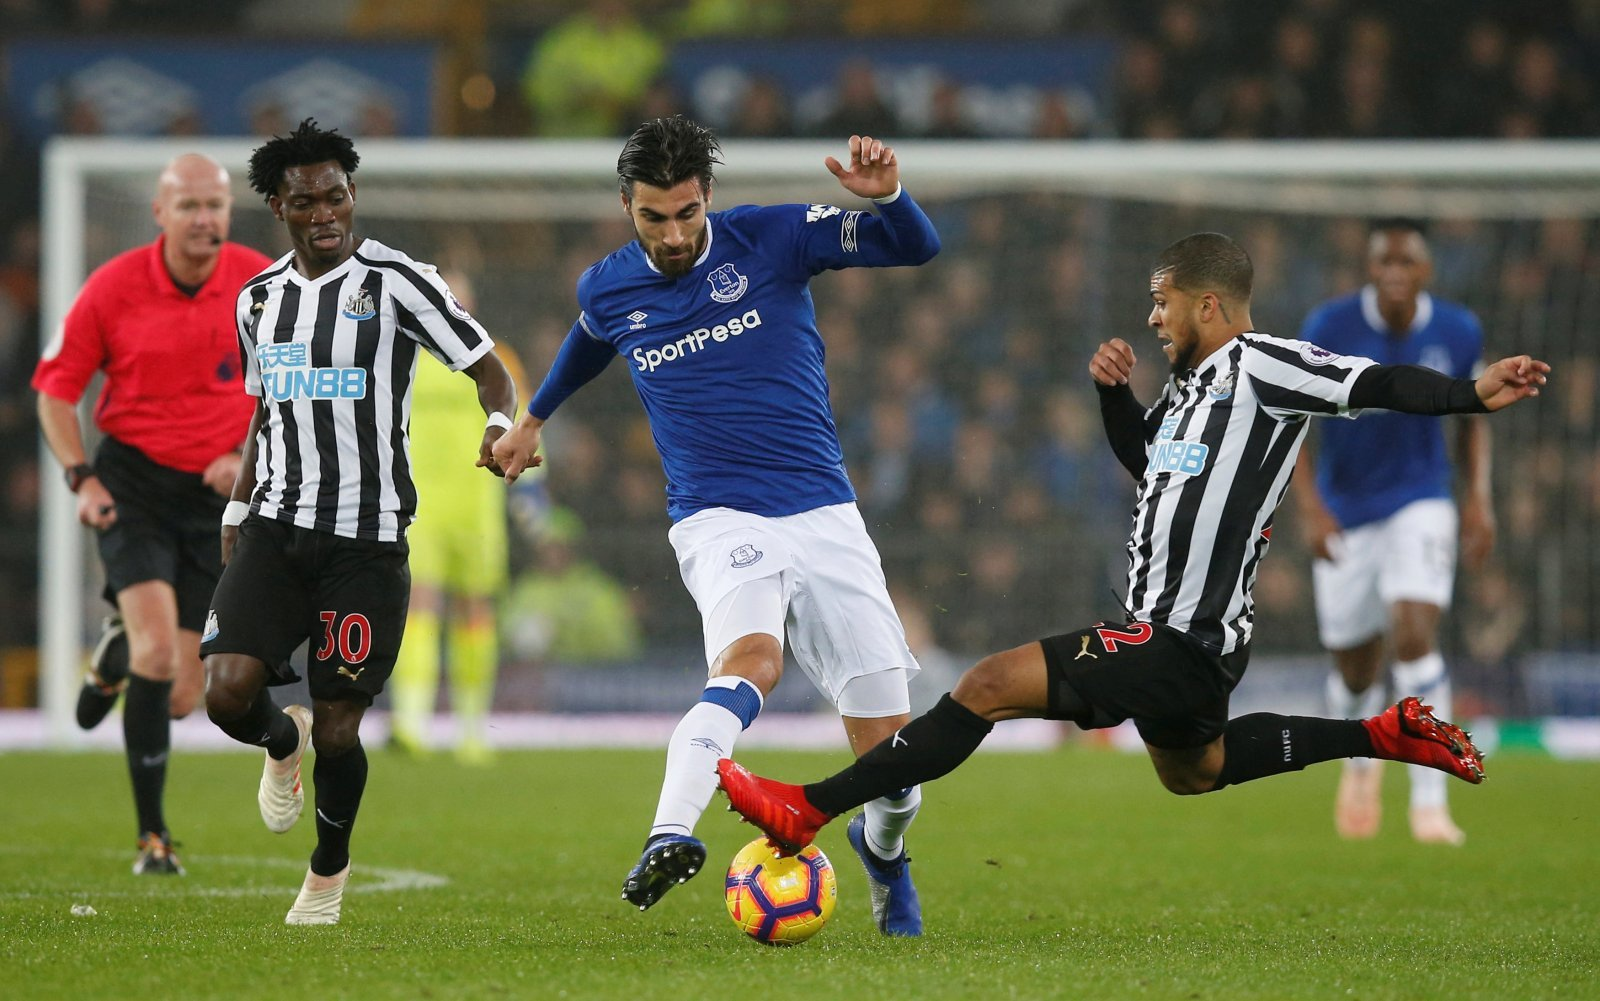 Forget Batshuayi: Everton must focus all their efforts on sealing permanent Andre Gomes deal